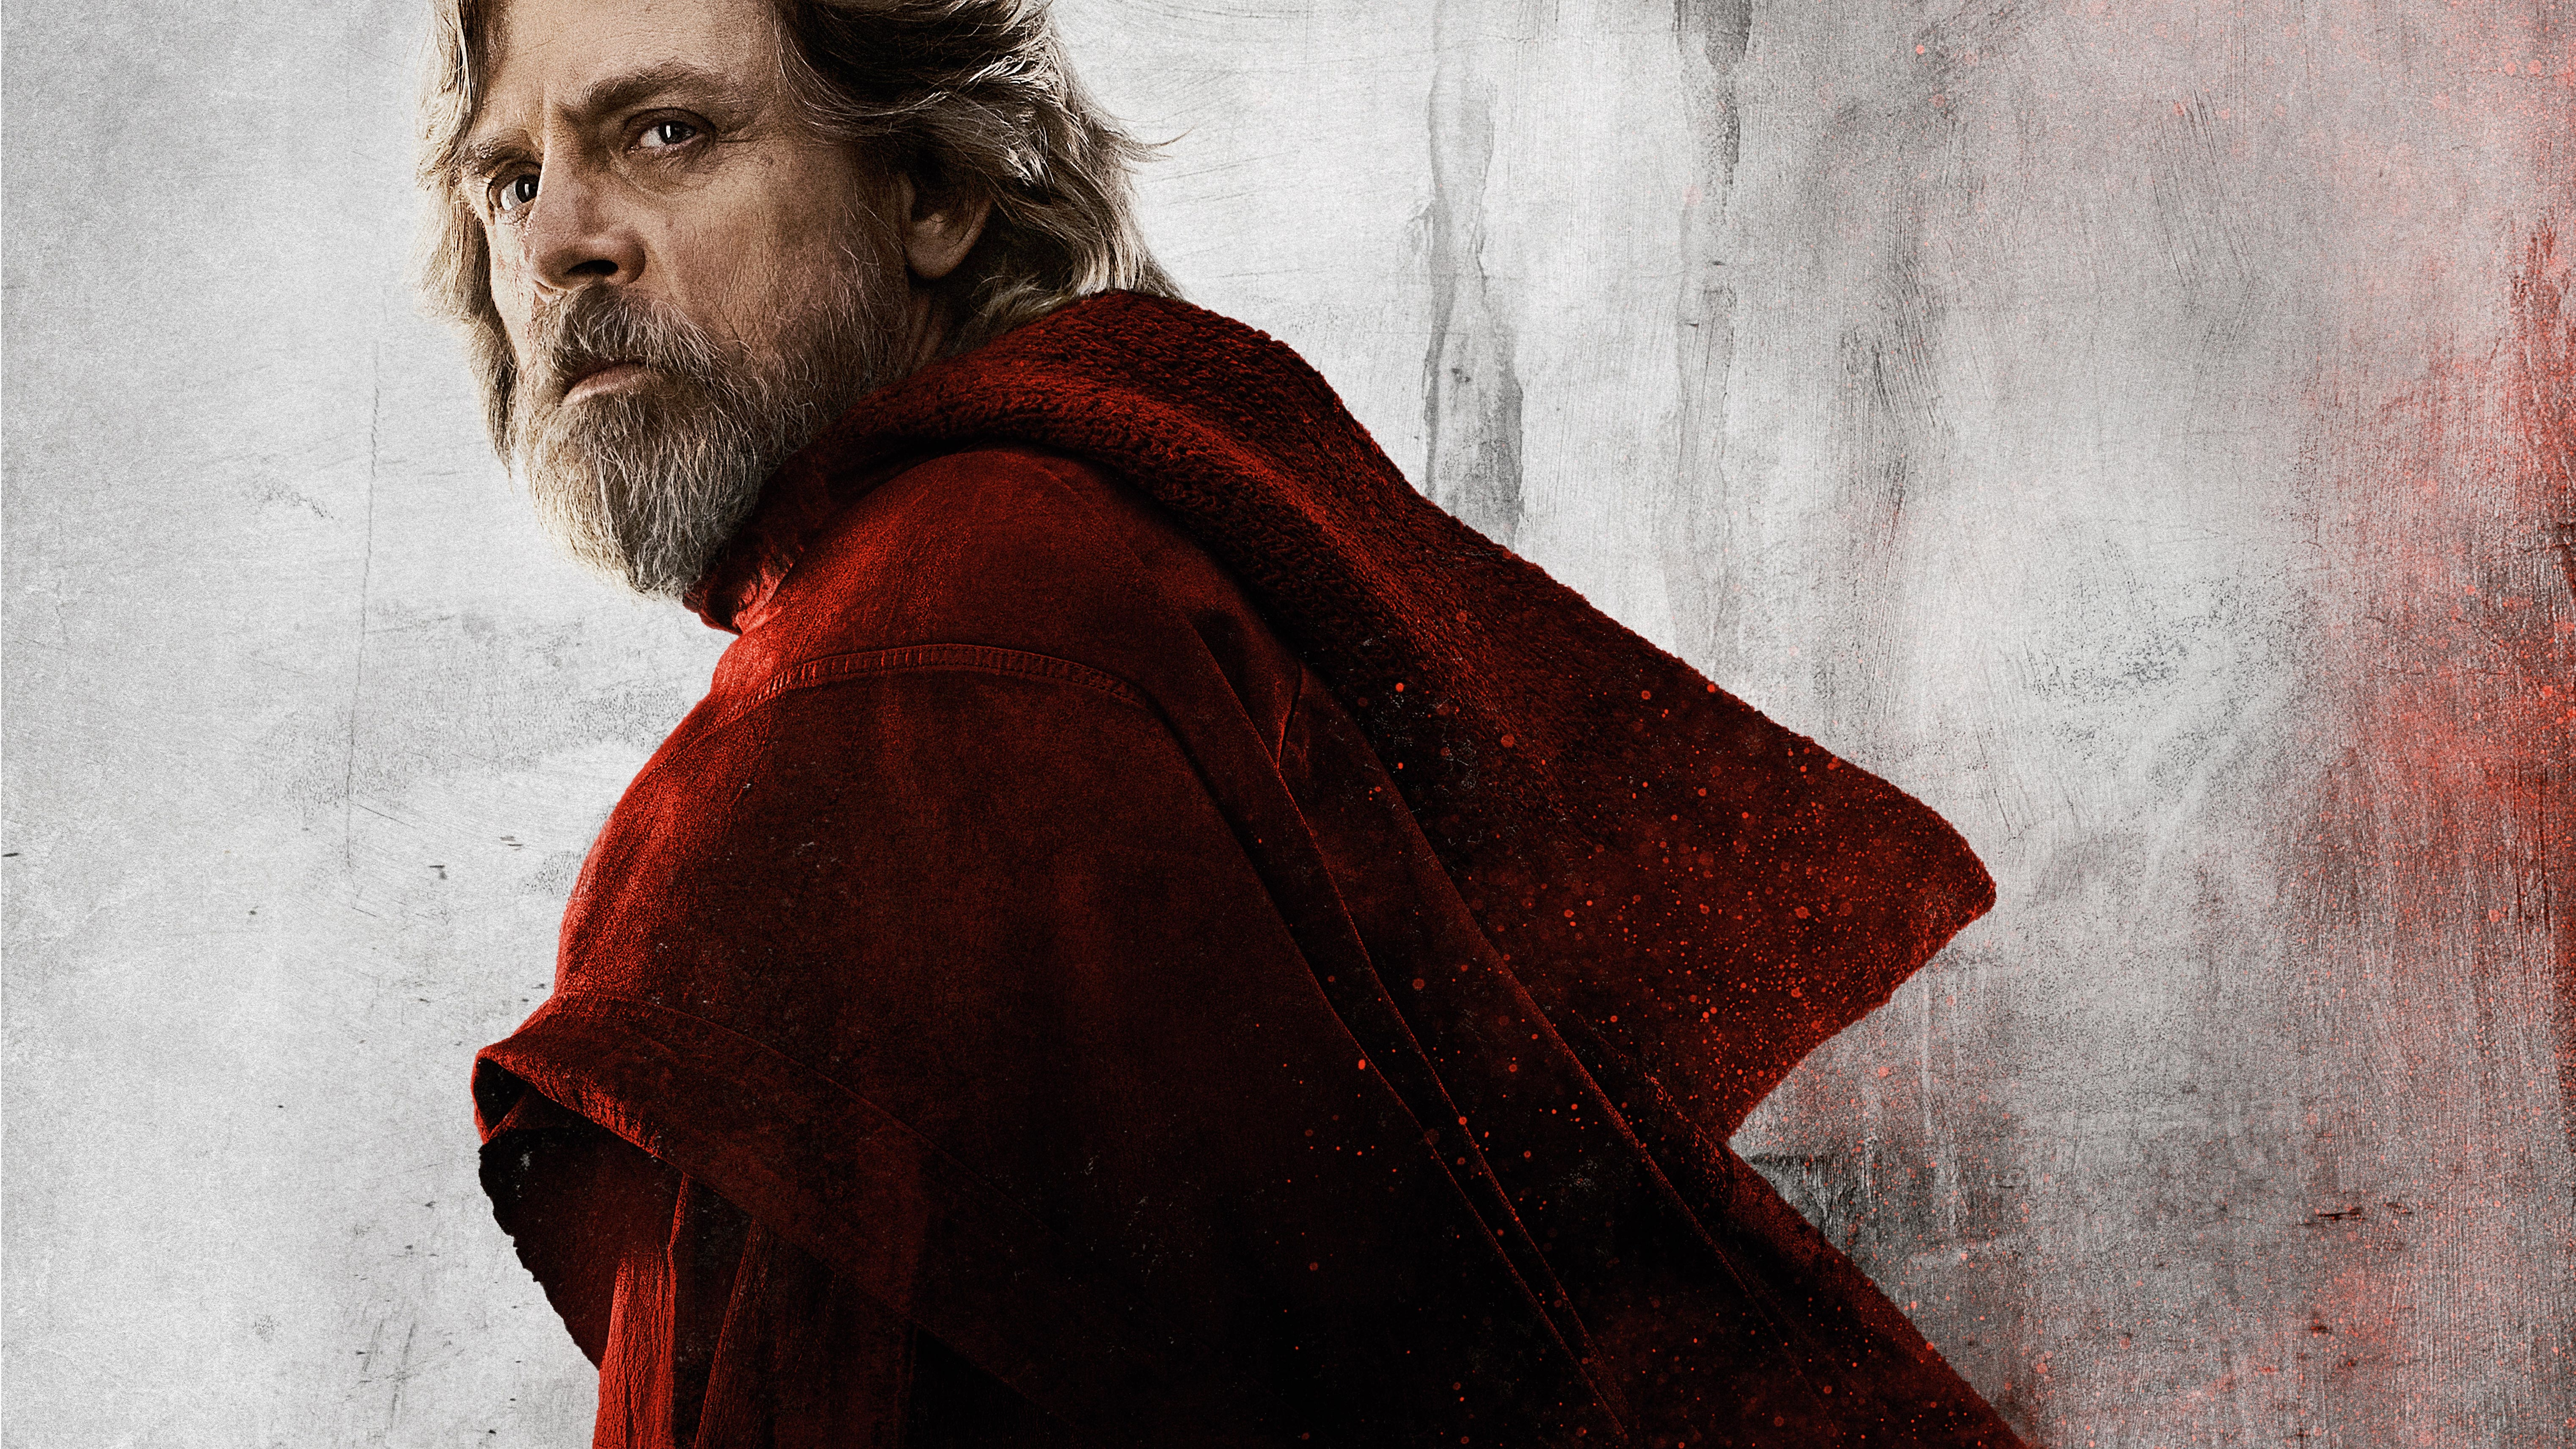 1920x1080 Luke Skywalker Star Wars The Last Jedi 1080p Laptop Full Hd Wallpaper Hd Movies 4k Wallpapers Images Photos And Background